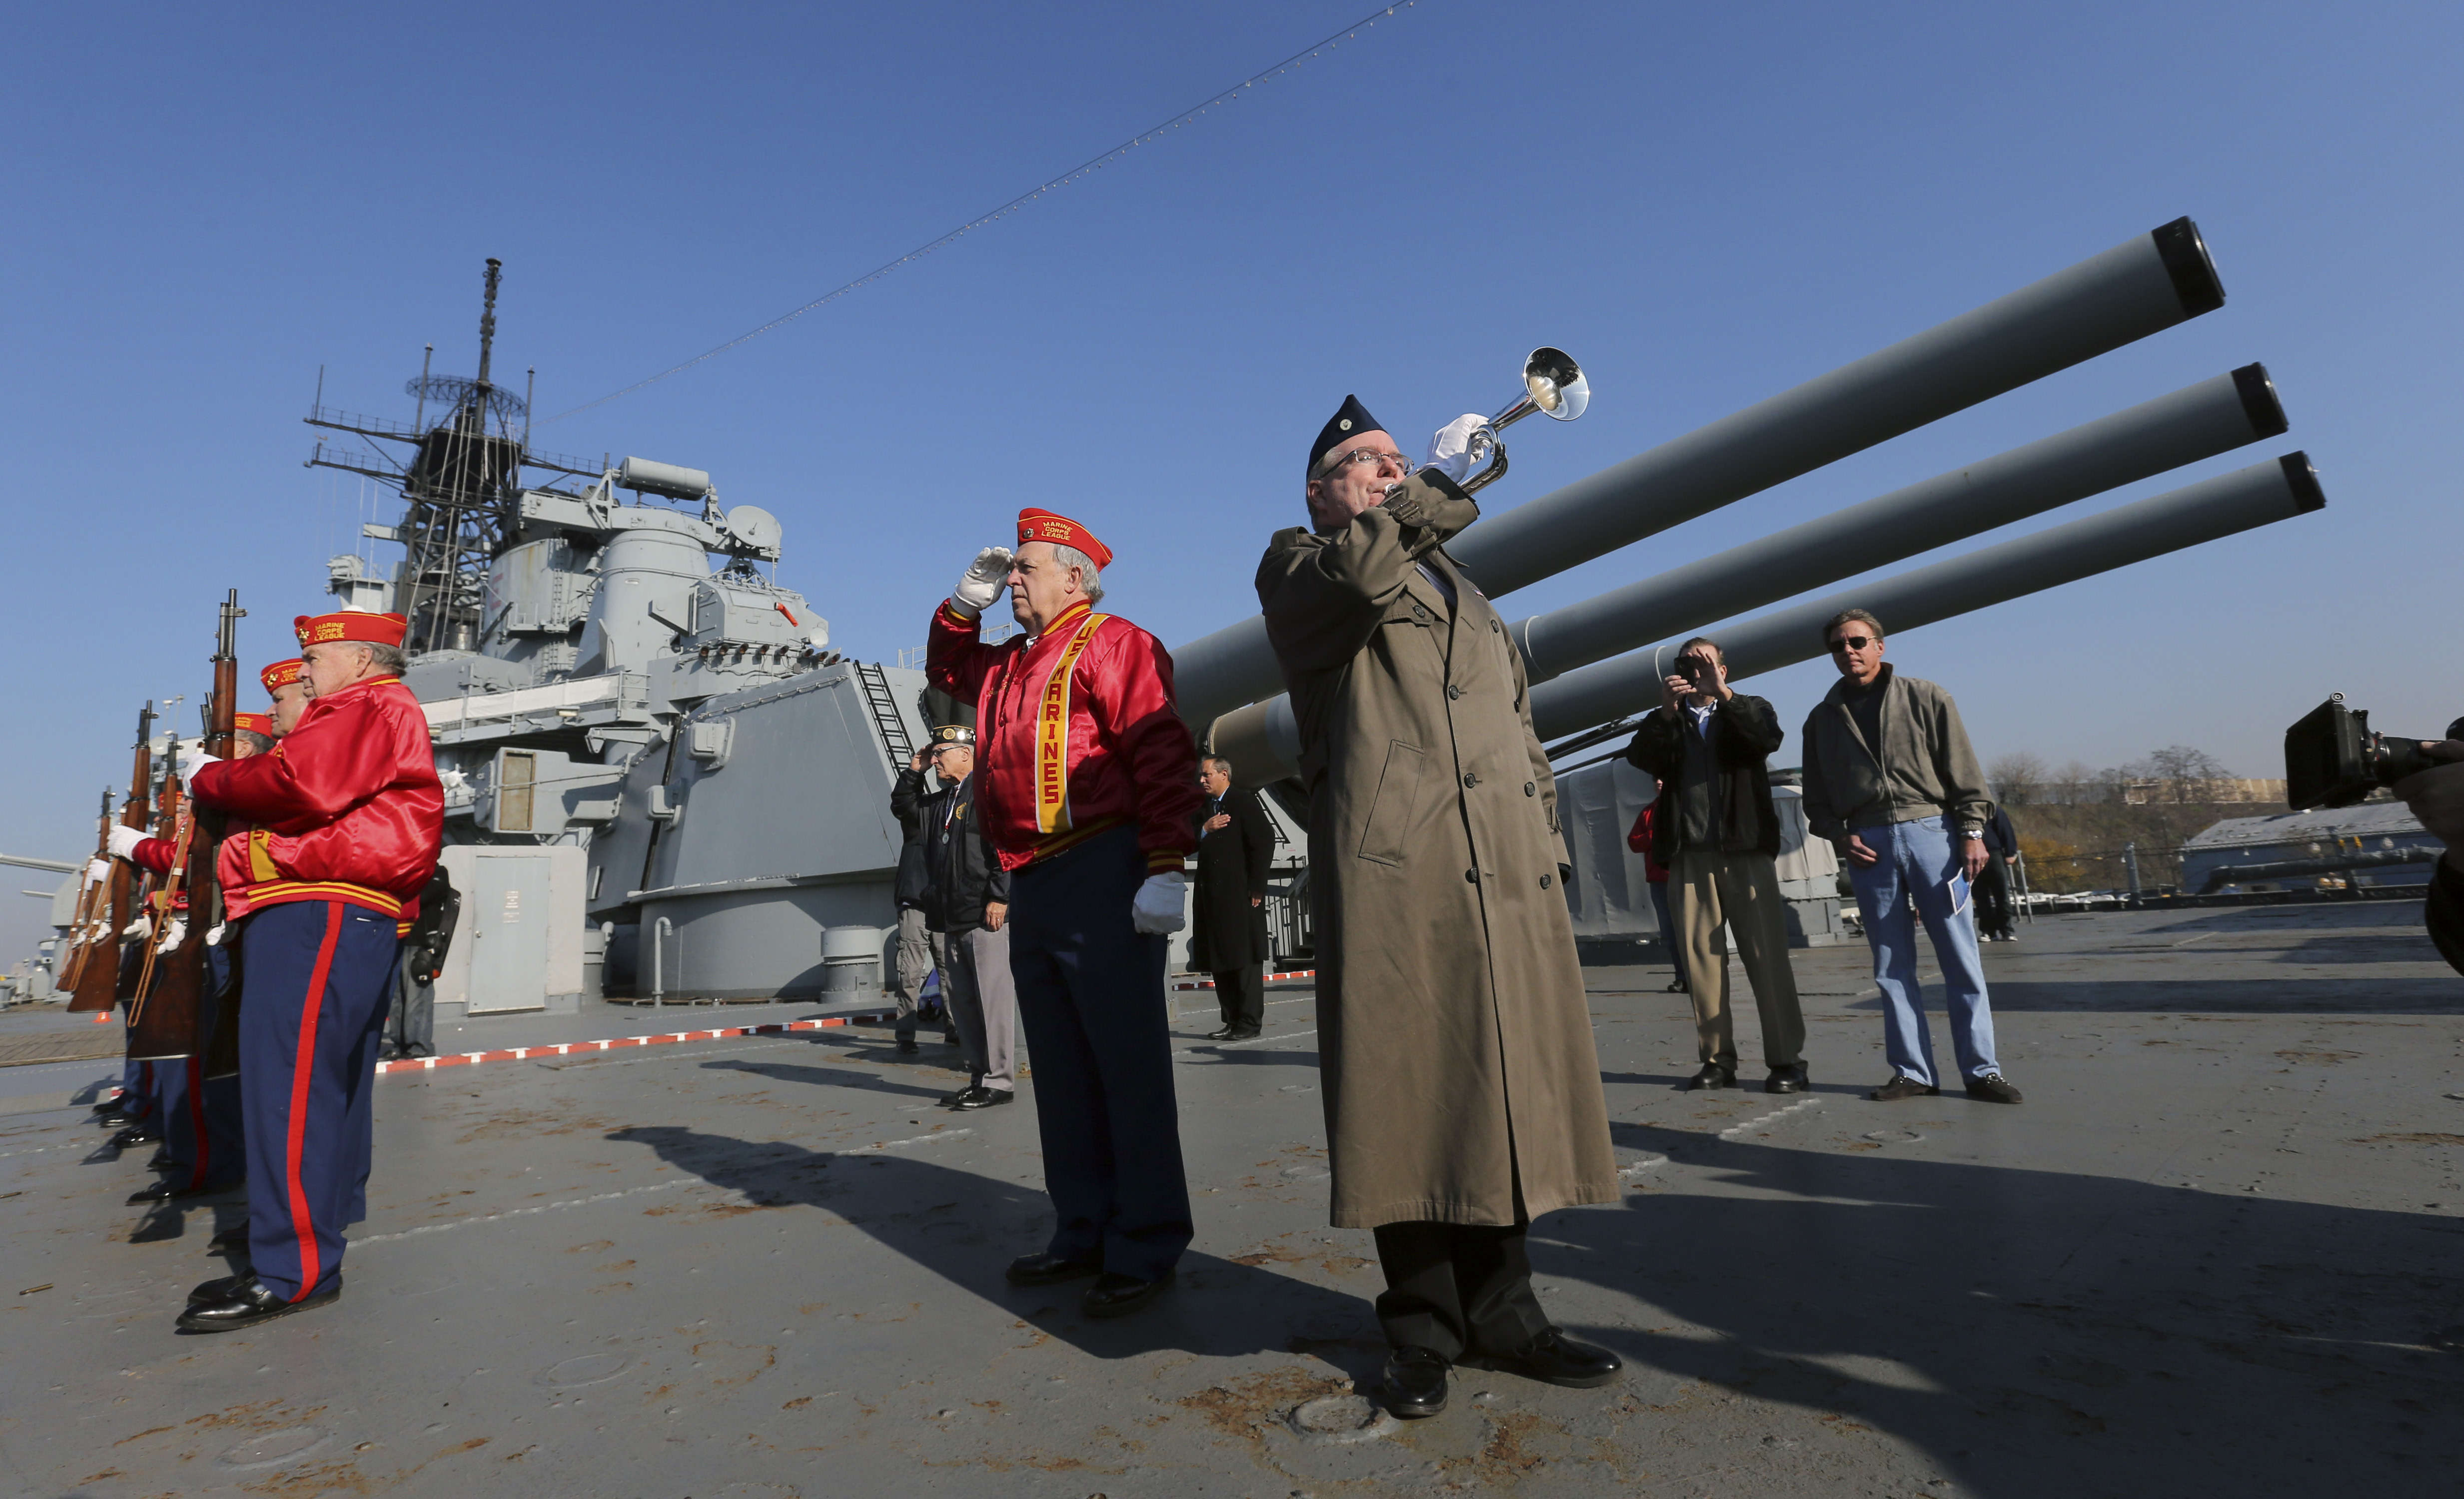 Bugler Greg Murphy plays taps on the battleship New Jersey during a commemoration of the 74th anniversary of the attack on Pearl Harbor, Monday, Dec. 7, 2015, in Camden, N.J. (AP Photo/Mel Evans)